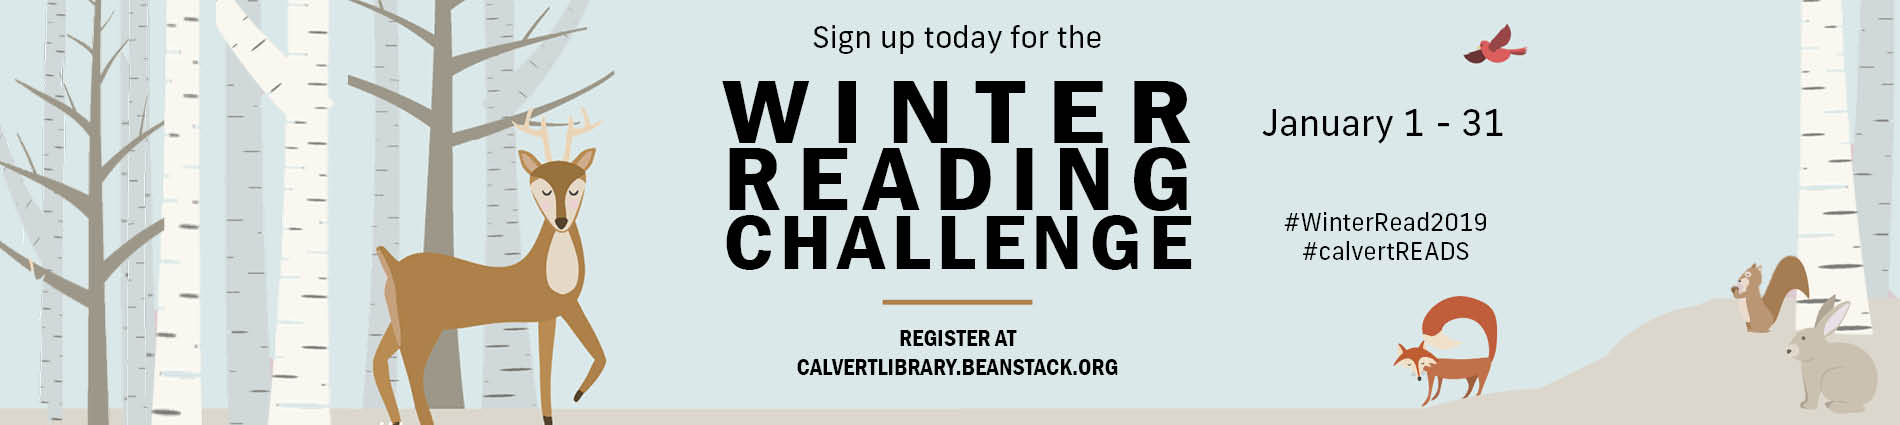 Winter Reading 2019 image